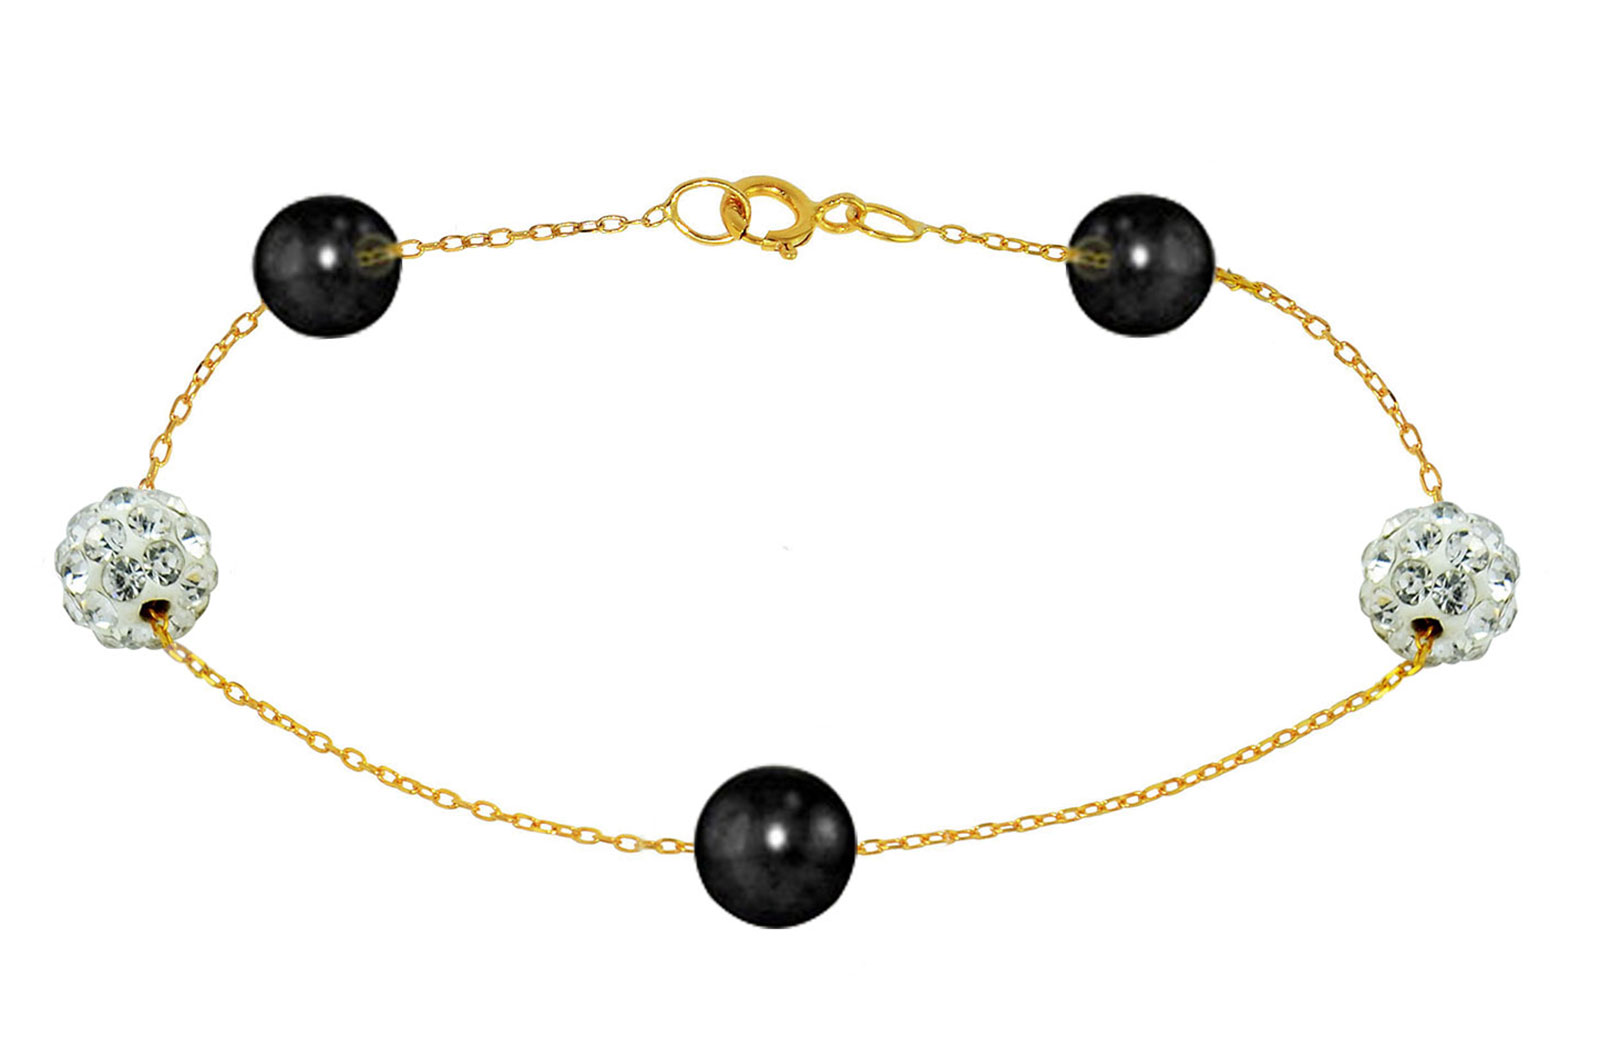 Vera Perla 18K Solid Gold Gradual Built-in 5-6mm Black Pearls and Crystal Ball Bracelet